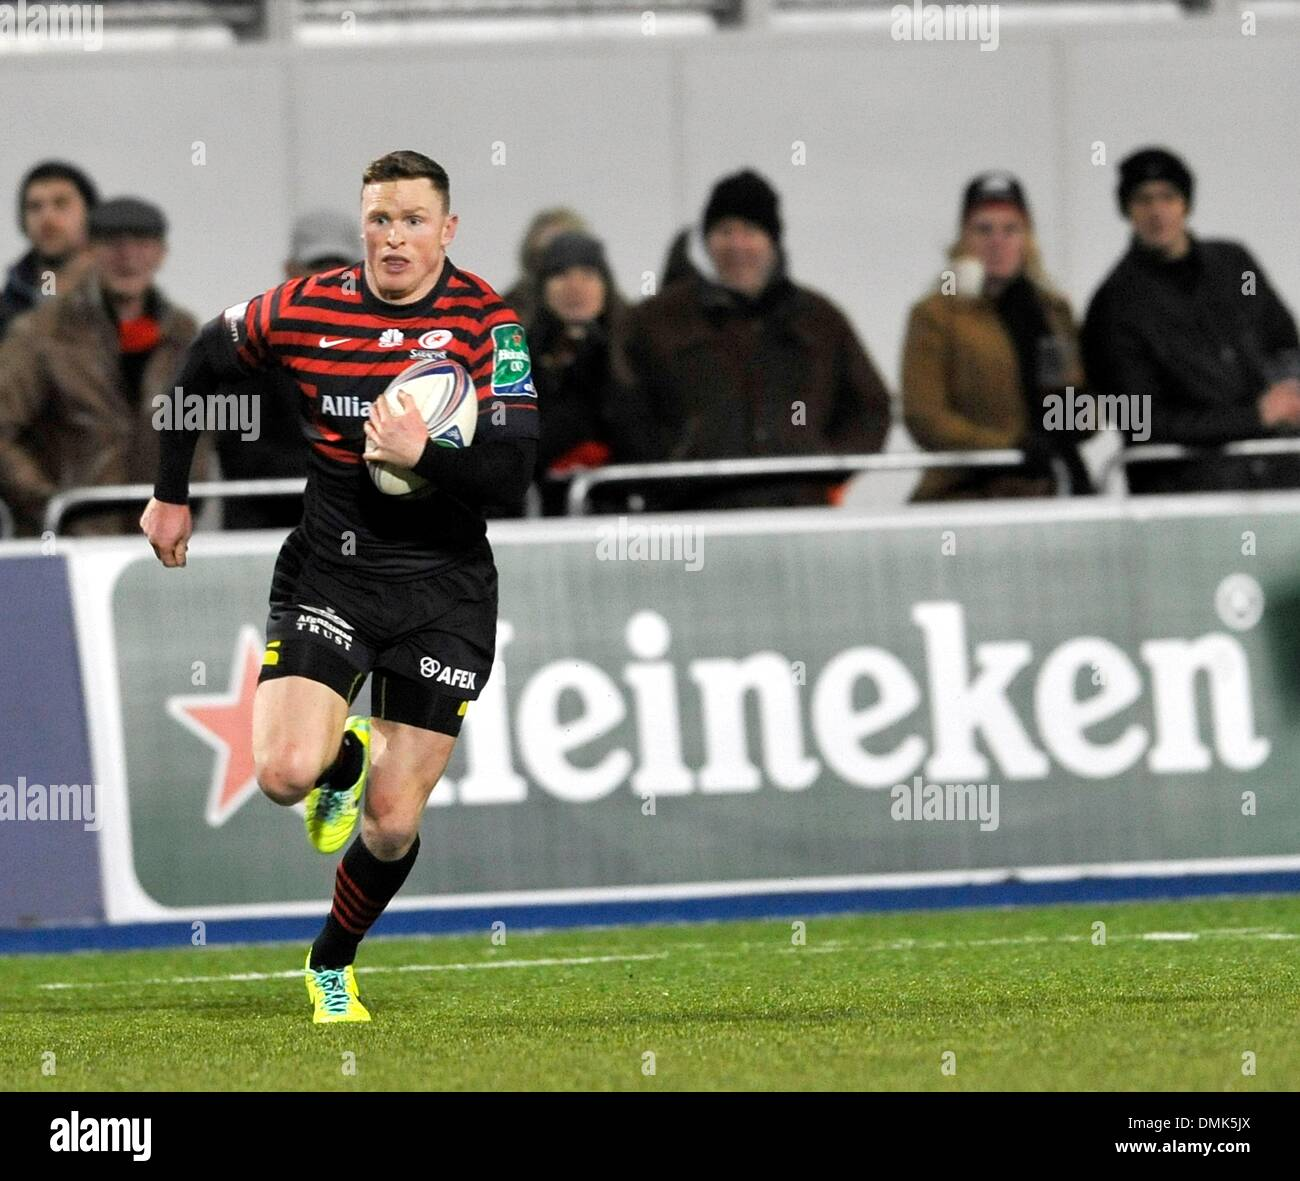 Zebre Rugby Stock Photos & Zebre Rugby Stock Images